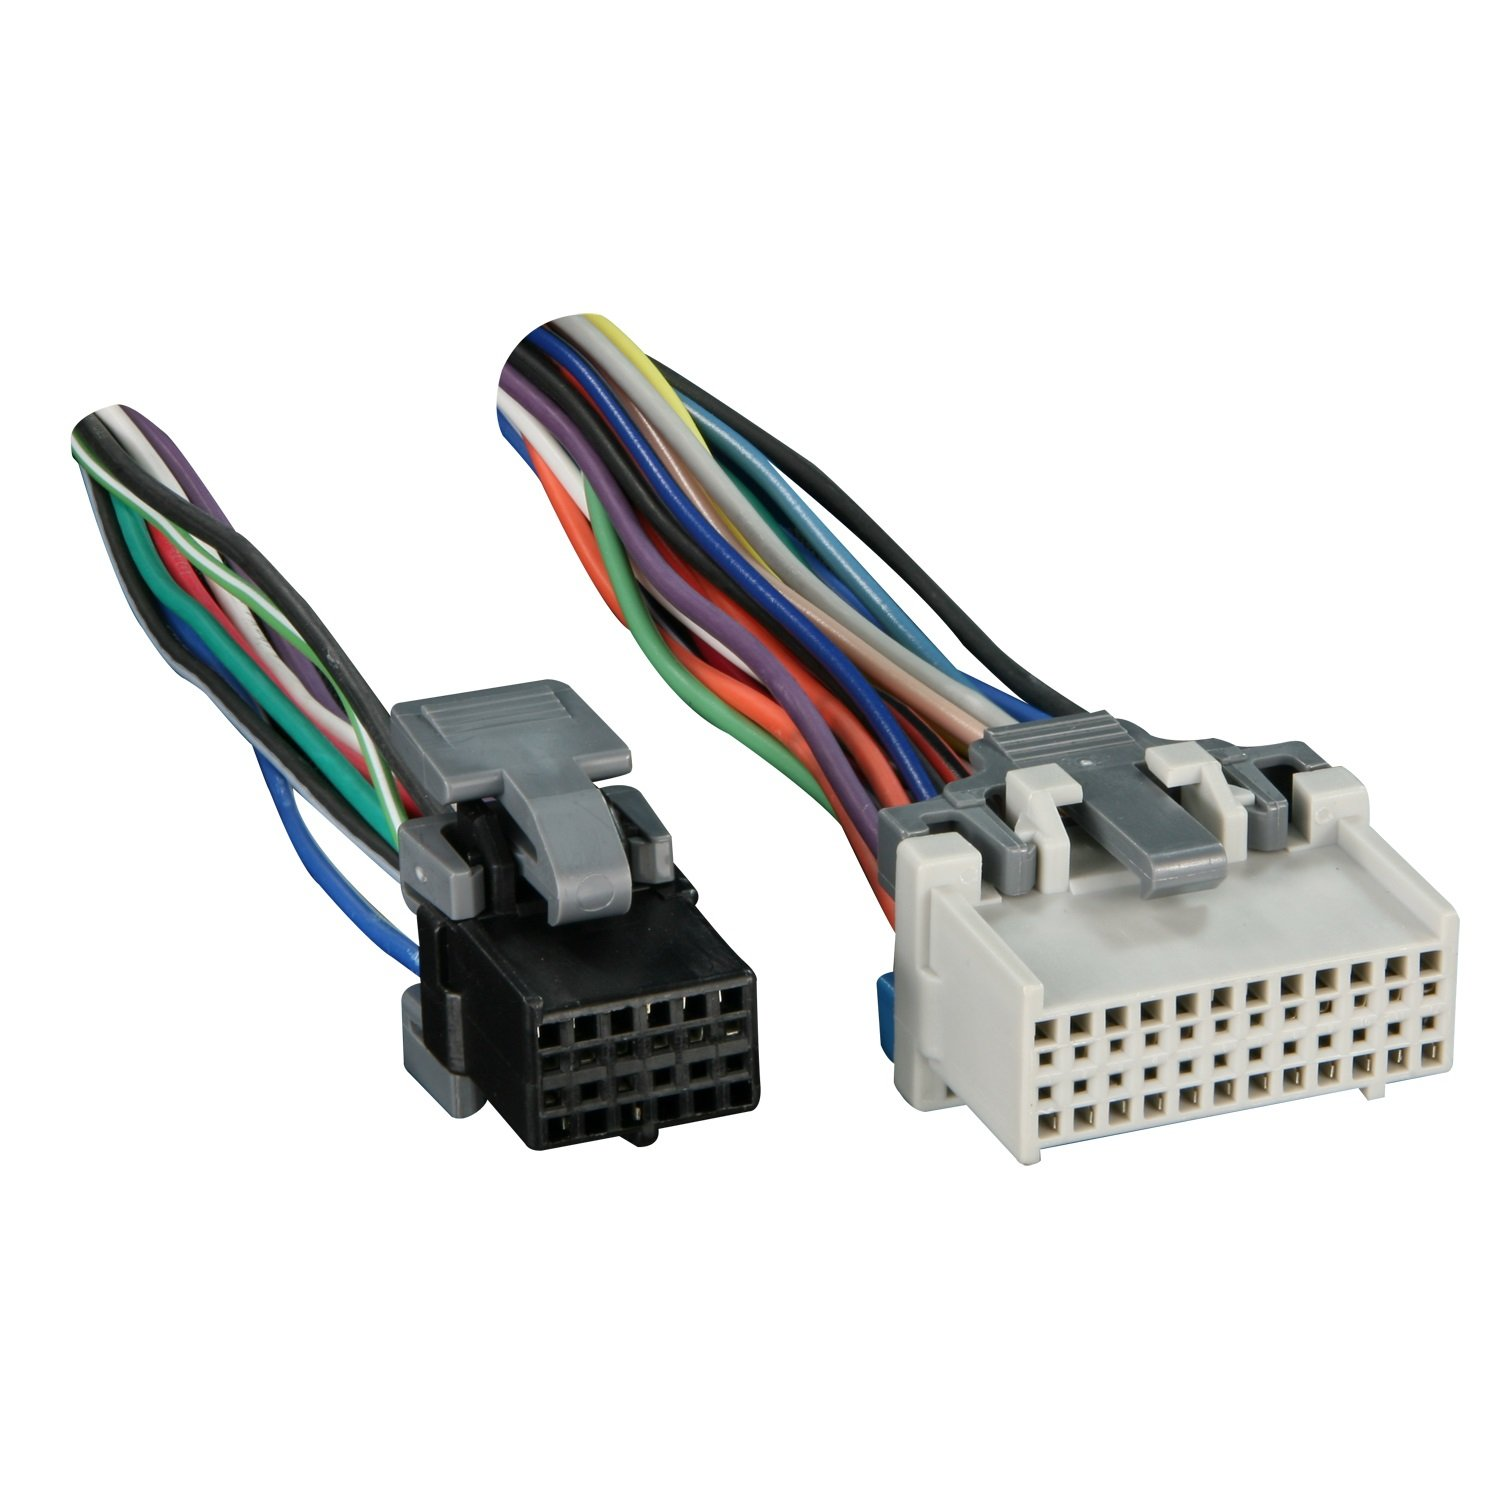 711log4bdML._SL1500_ amazon com metra turbowires 71 2003 1 wiring harness car electronics GM Wiring Color Codes at gsmx.co